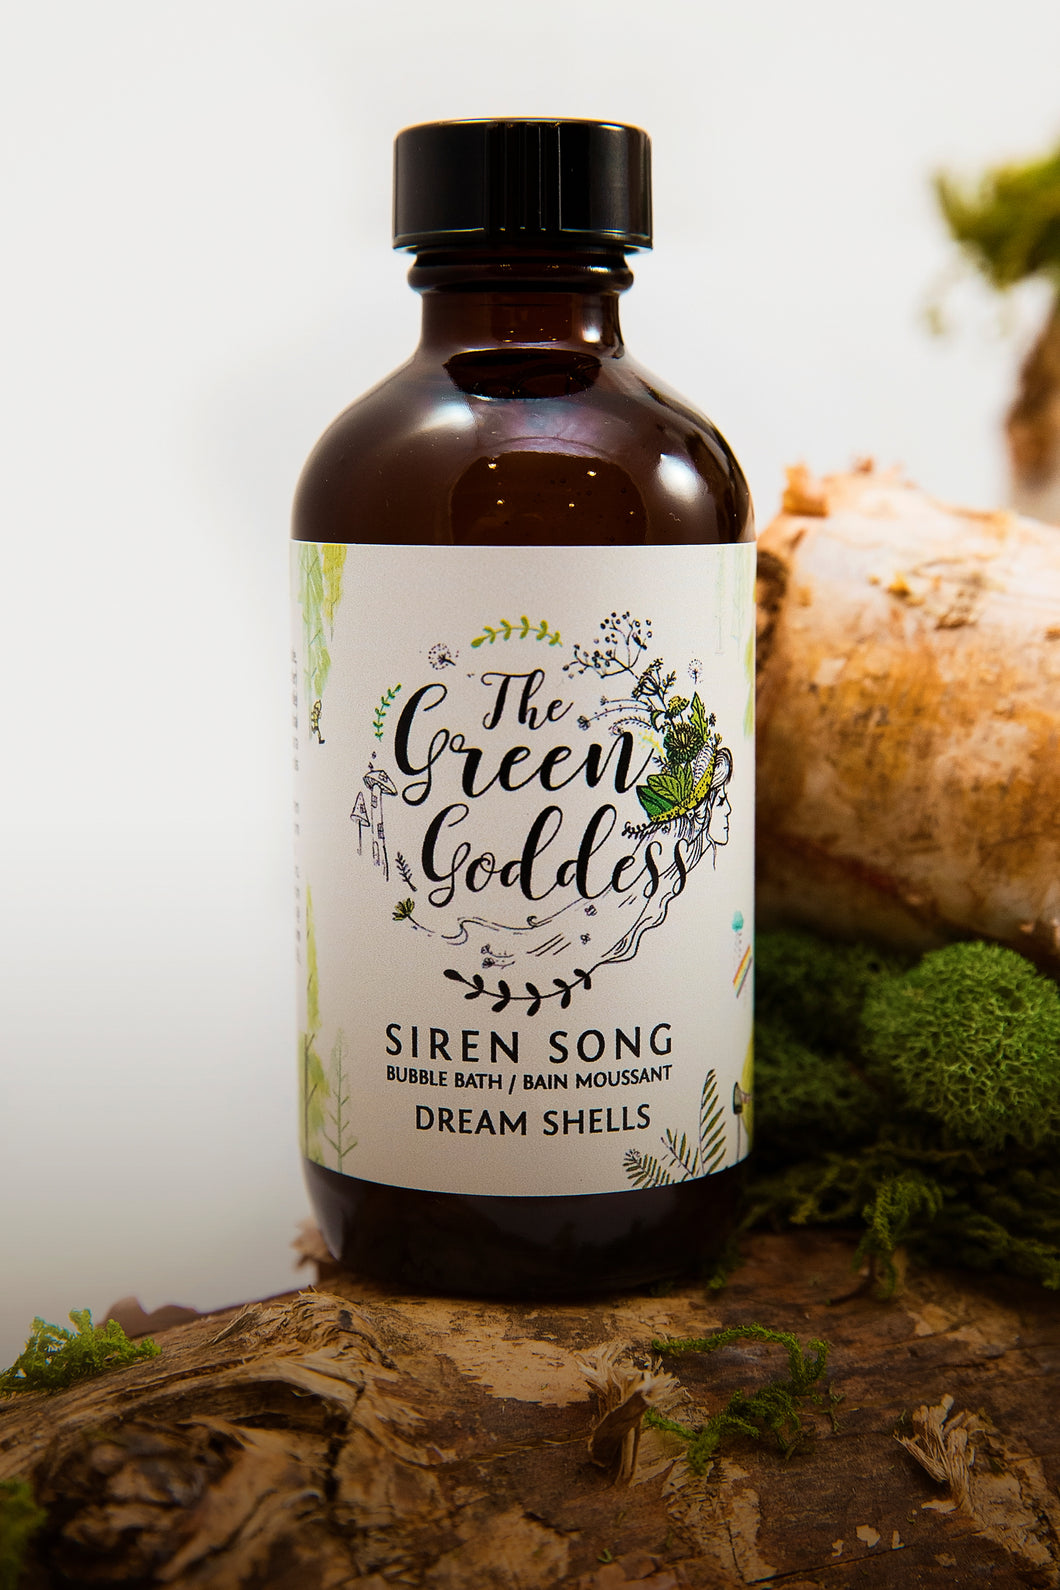 Siren Song Bubble Bath/bain moussant